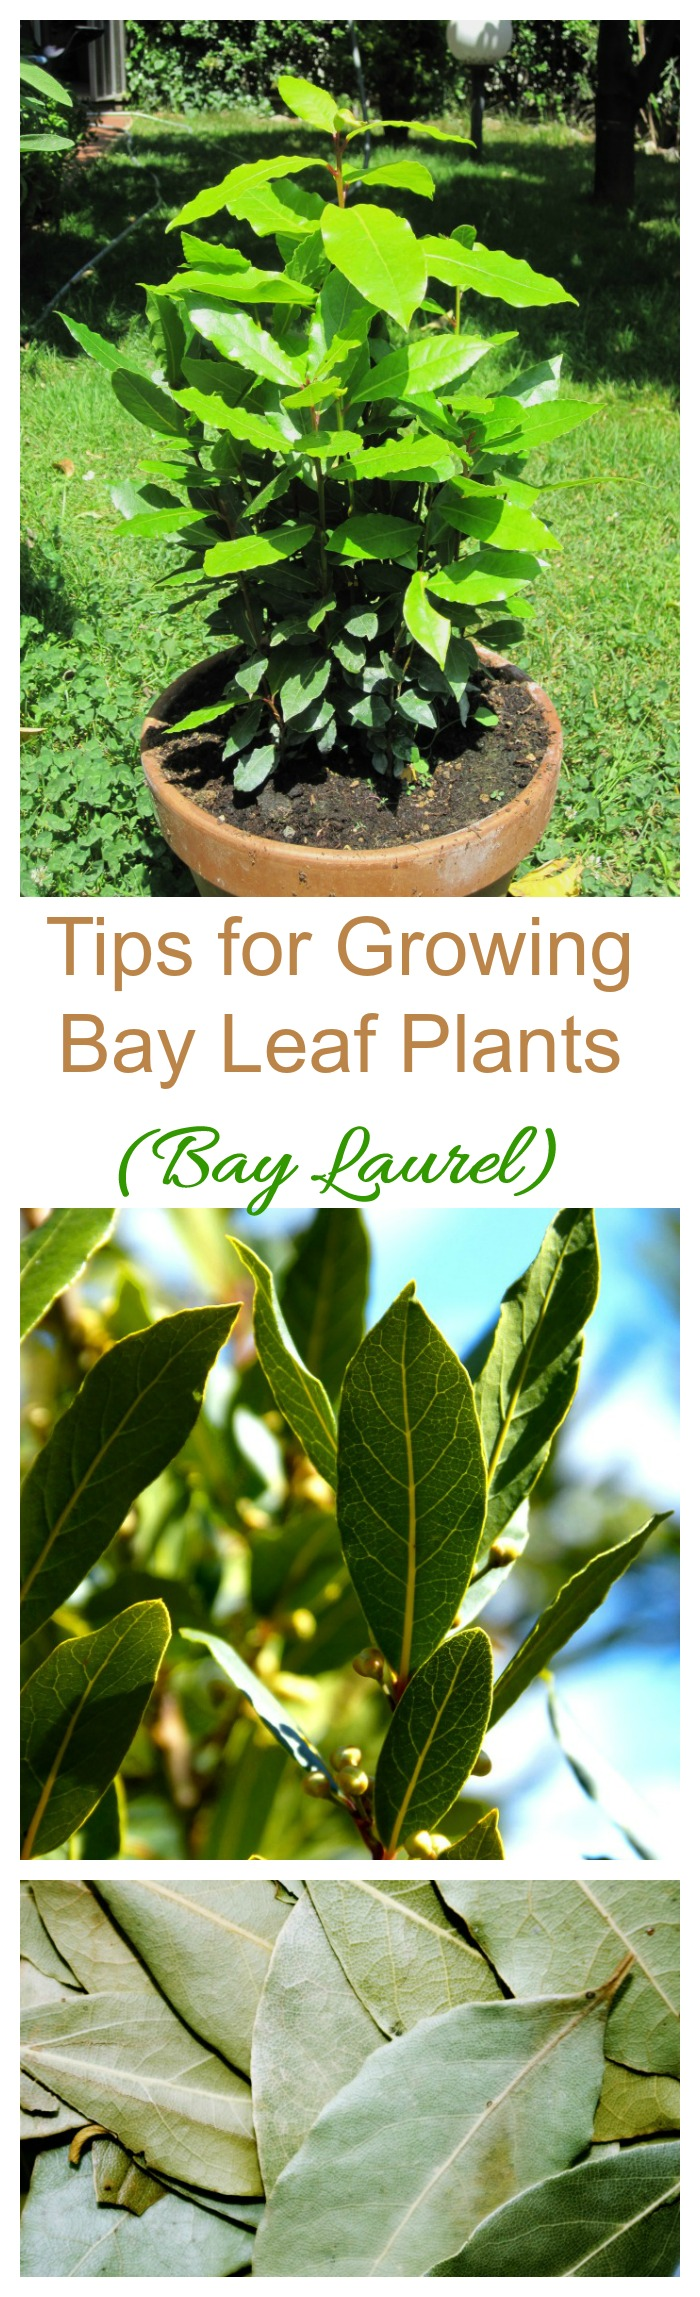 The bay leaf plant is also known as bay laurel. It can be grown in containers or as a tree or shrub in warmer zones #bayleafplalnts #baylaurel